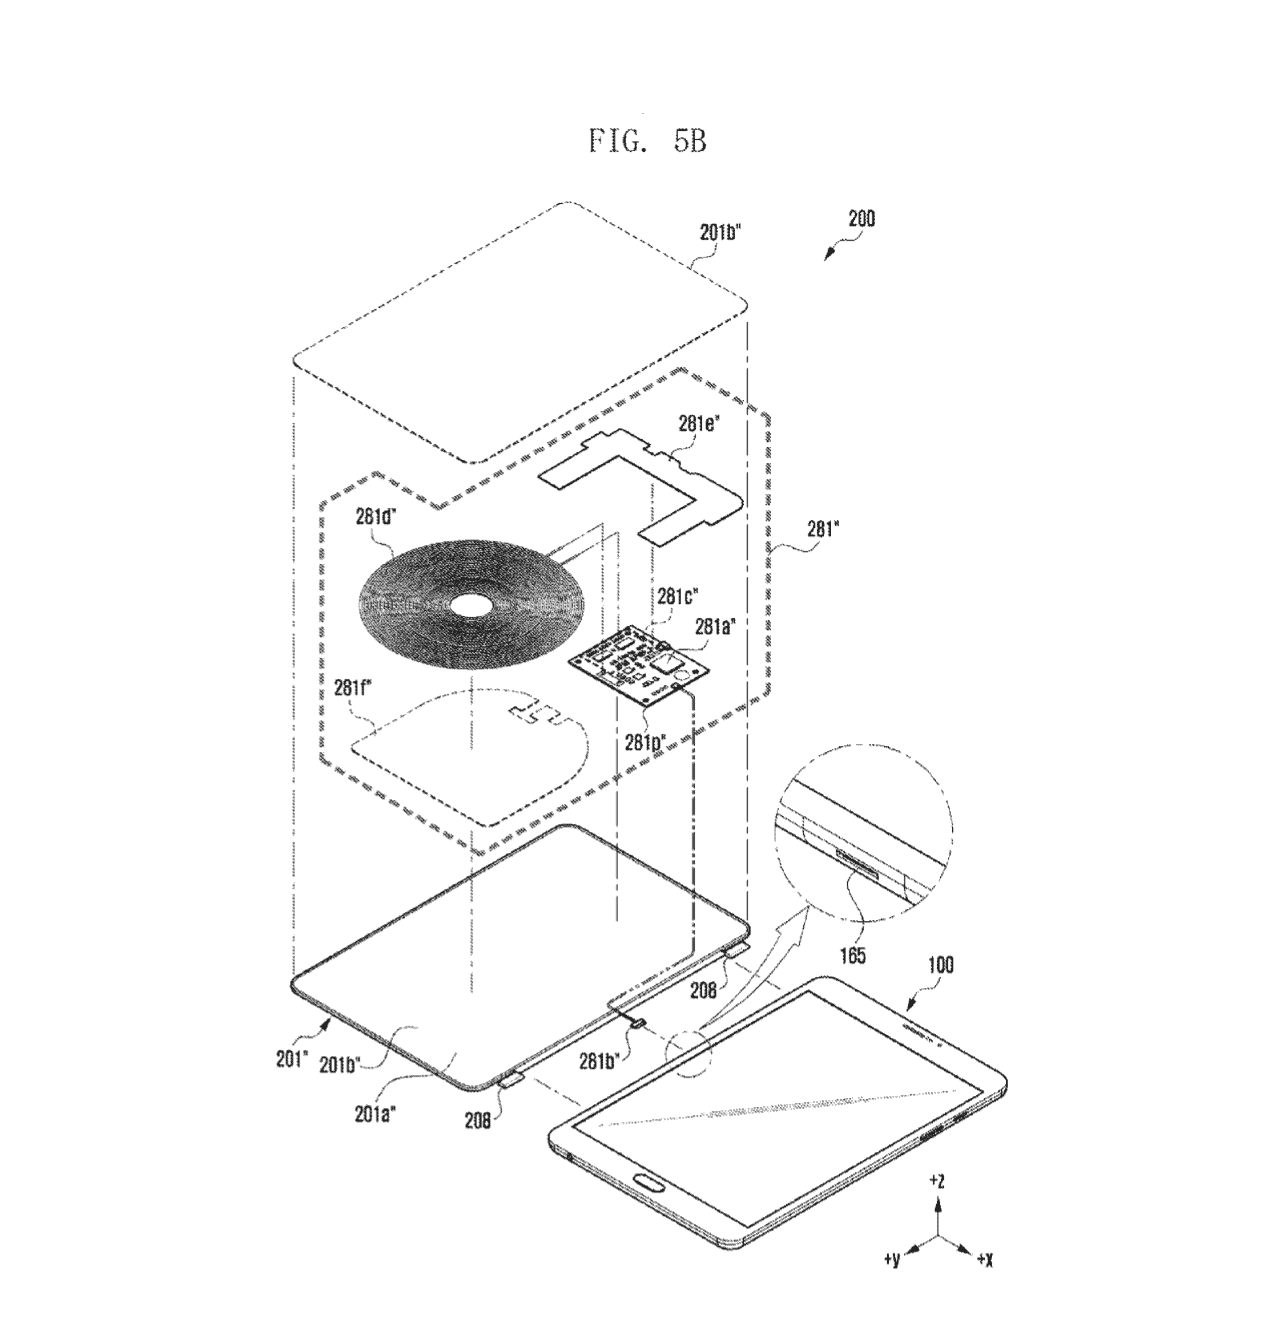 Samsung Wireless Charging Case Patents 3